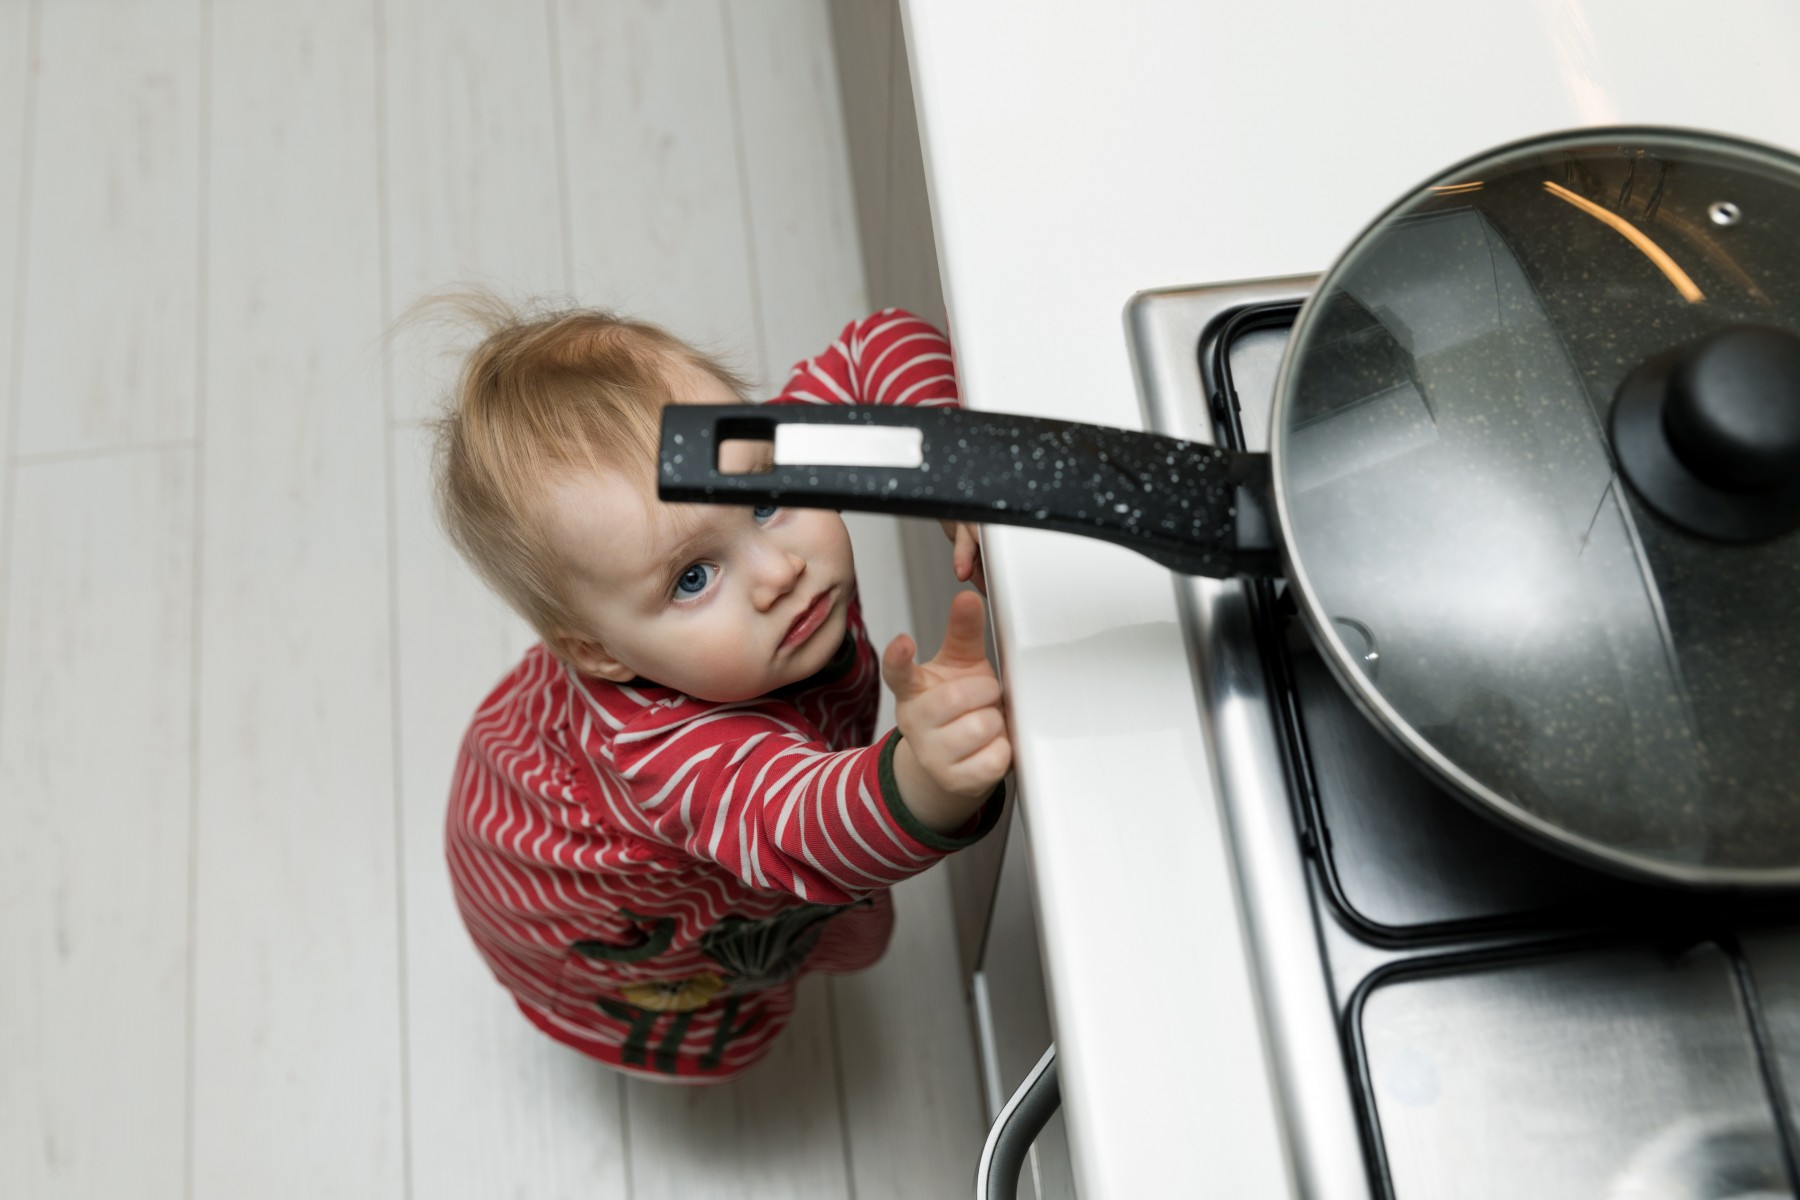 Child trying to touch the stove